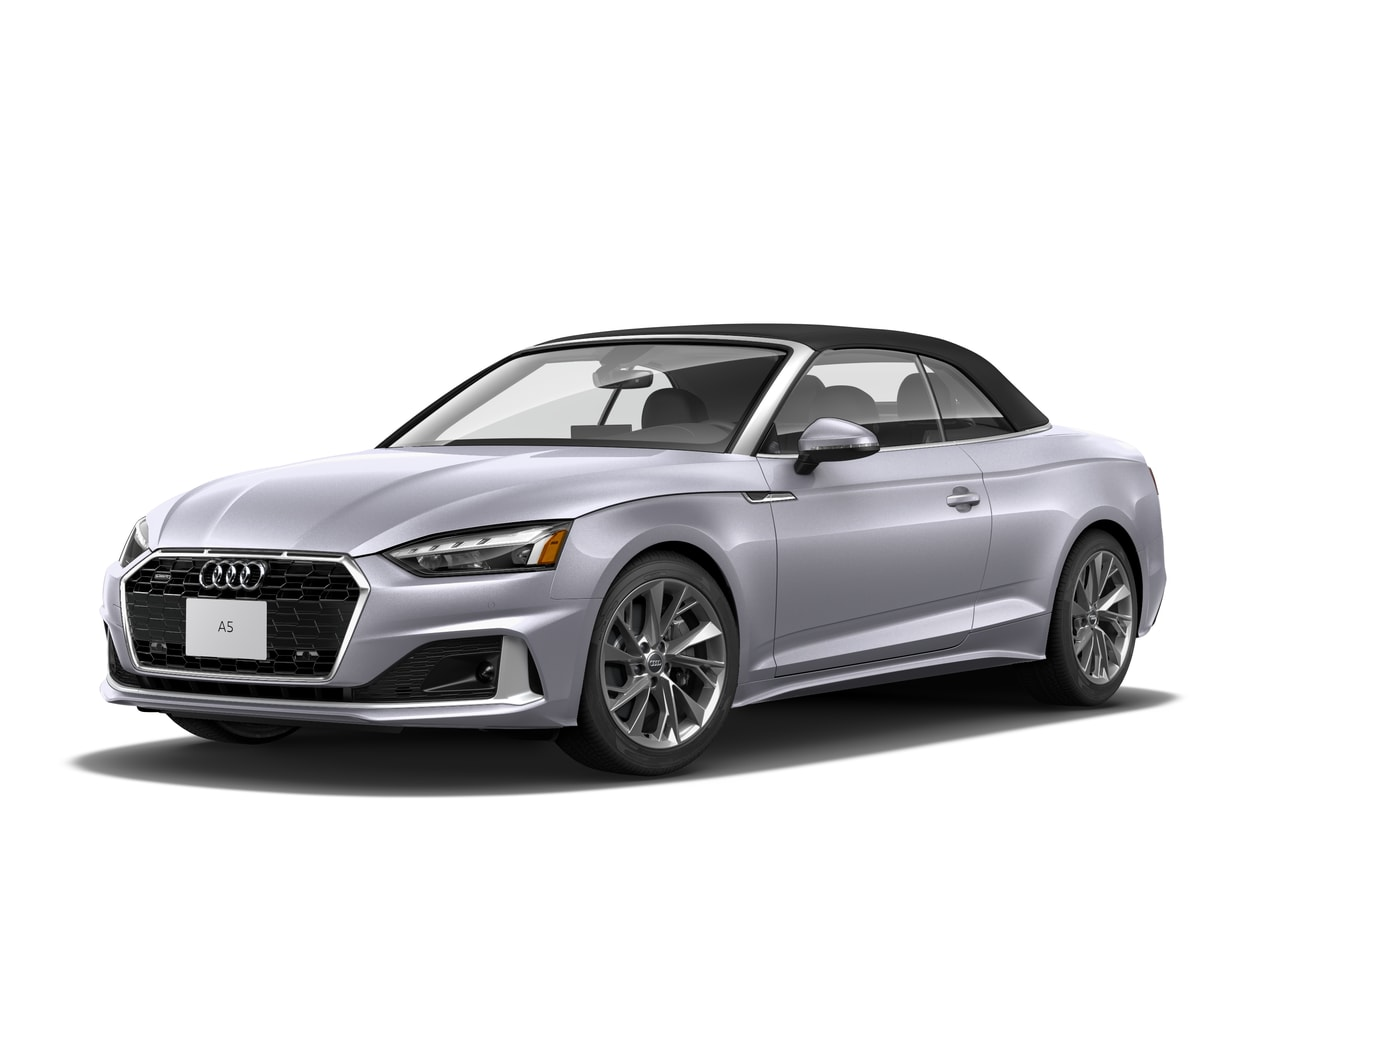 2020 Audi A5 For Sale in Latham NY   The Albany Auto Group